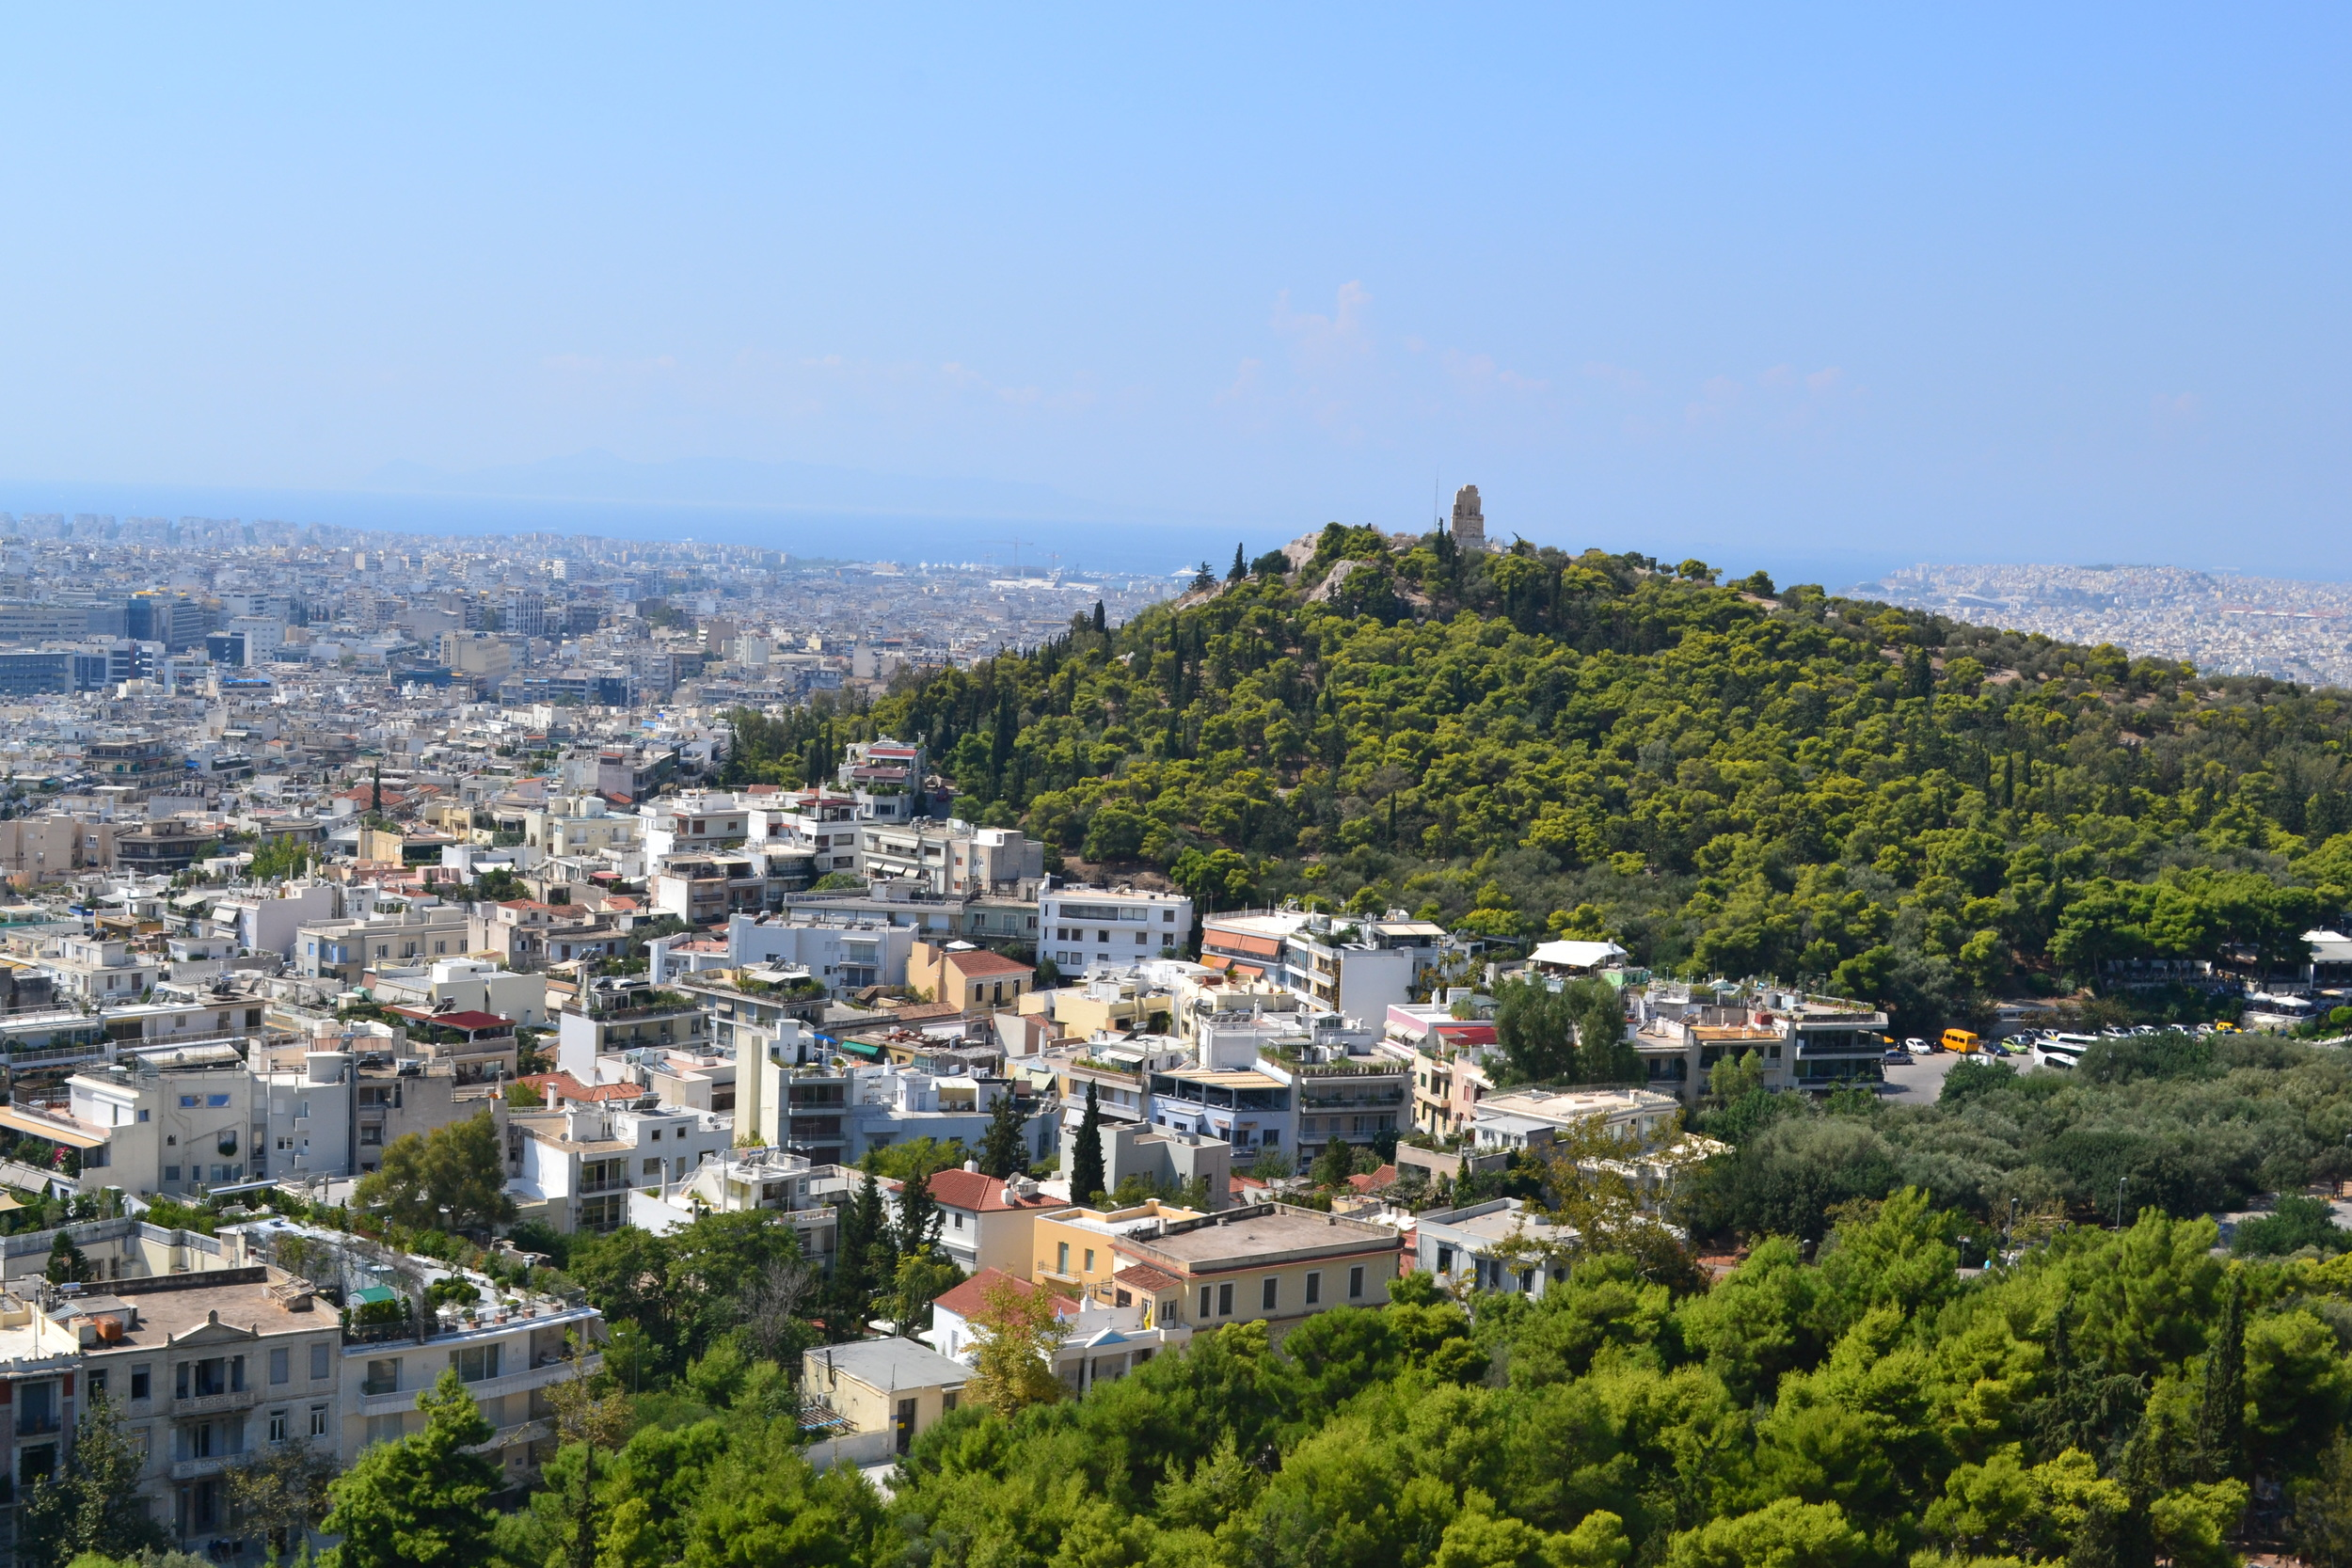 Looking out from the Acropolis